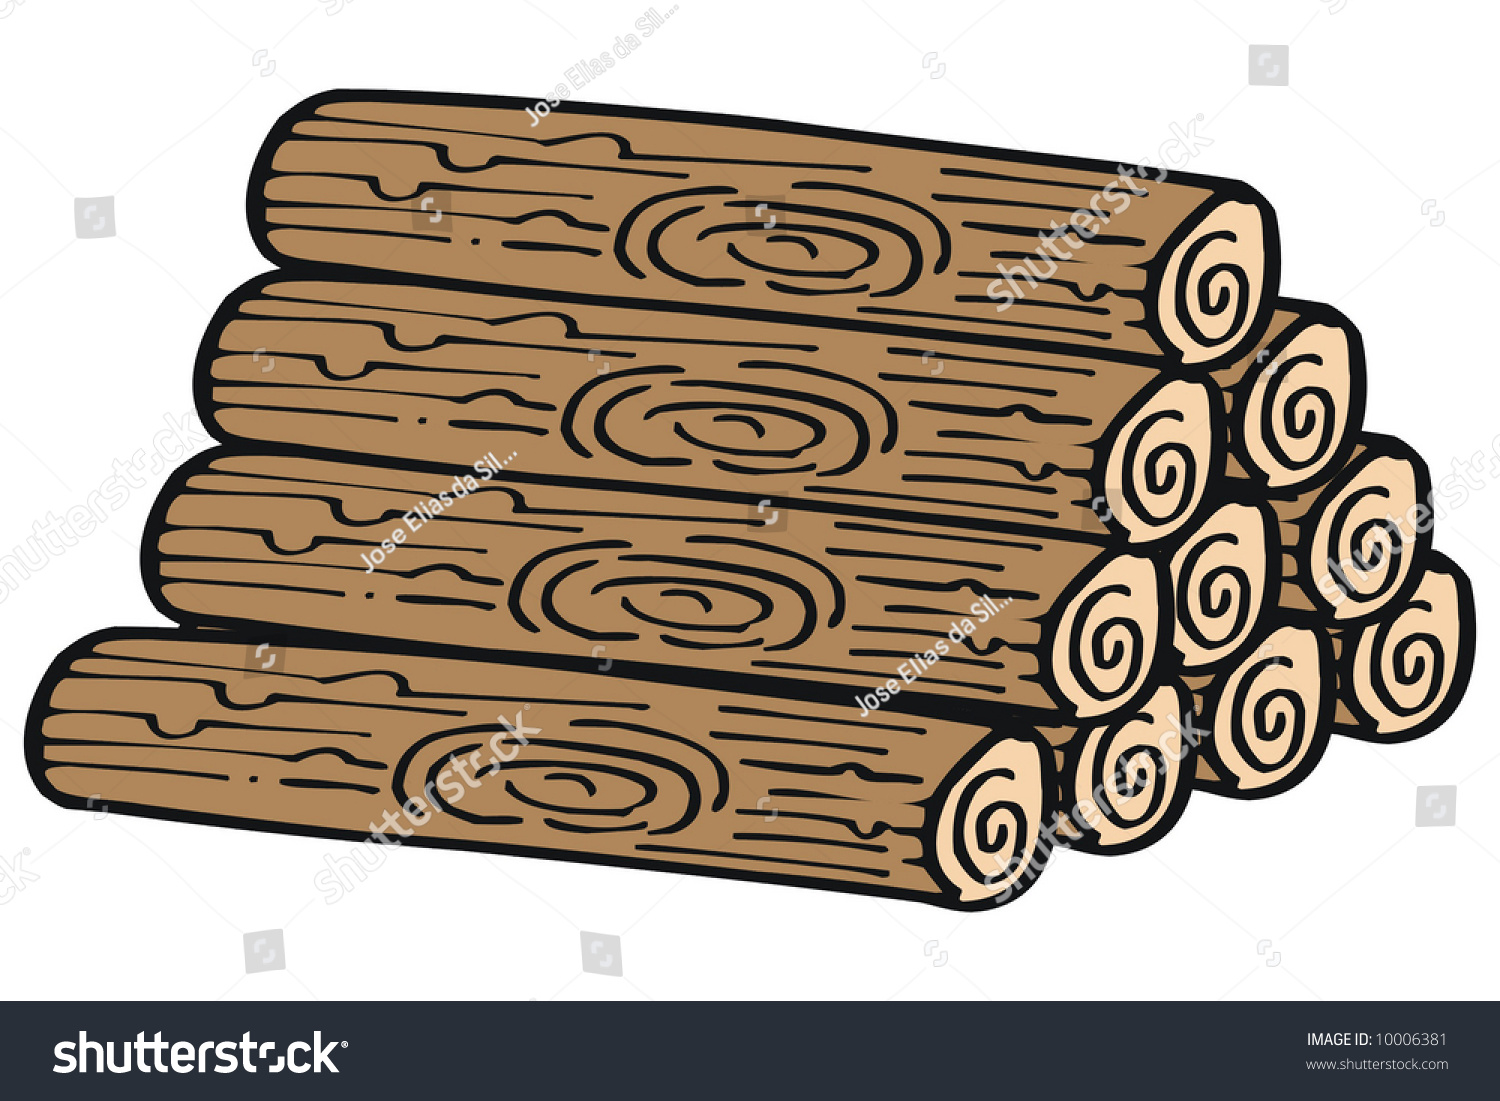 Art illustration of several pieces wood